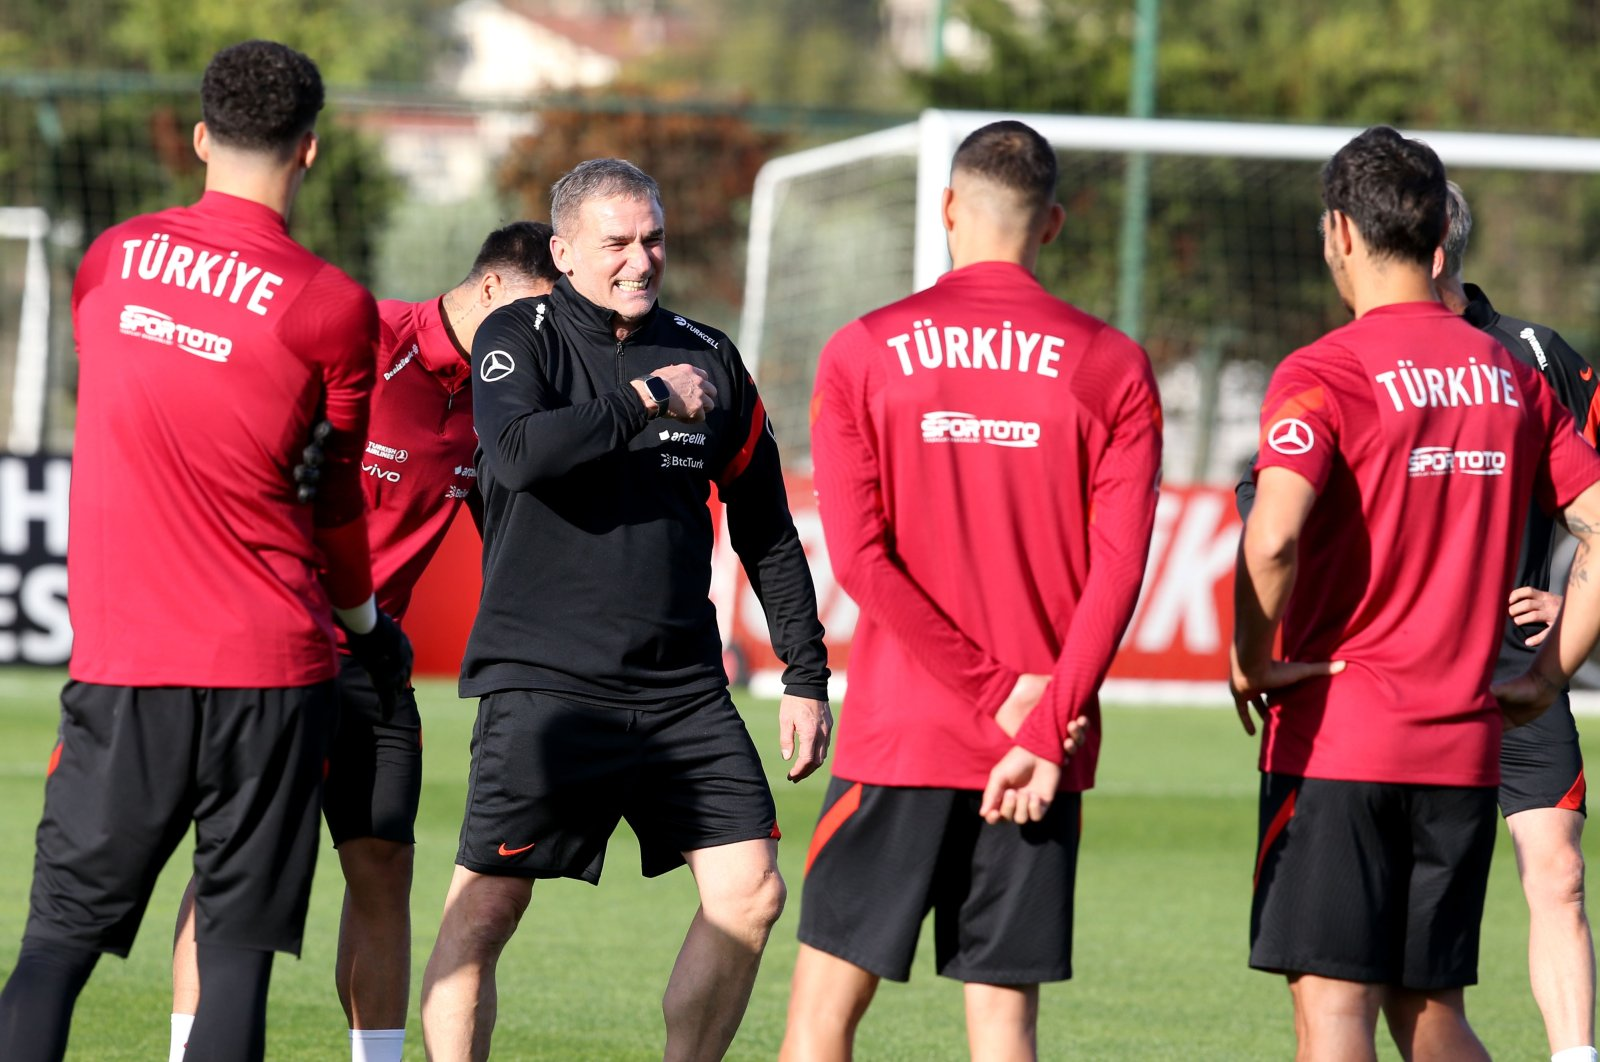 Turkish national football team coachStefan Kuntz (C) reacts during a training session in Istanbul, Turkey on Oct. 4, 2021, ahead of the upcoming World Cup 2022, Group G qualifying matchagainst Norway. (AA Photo)